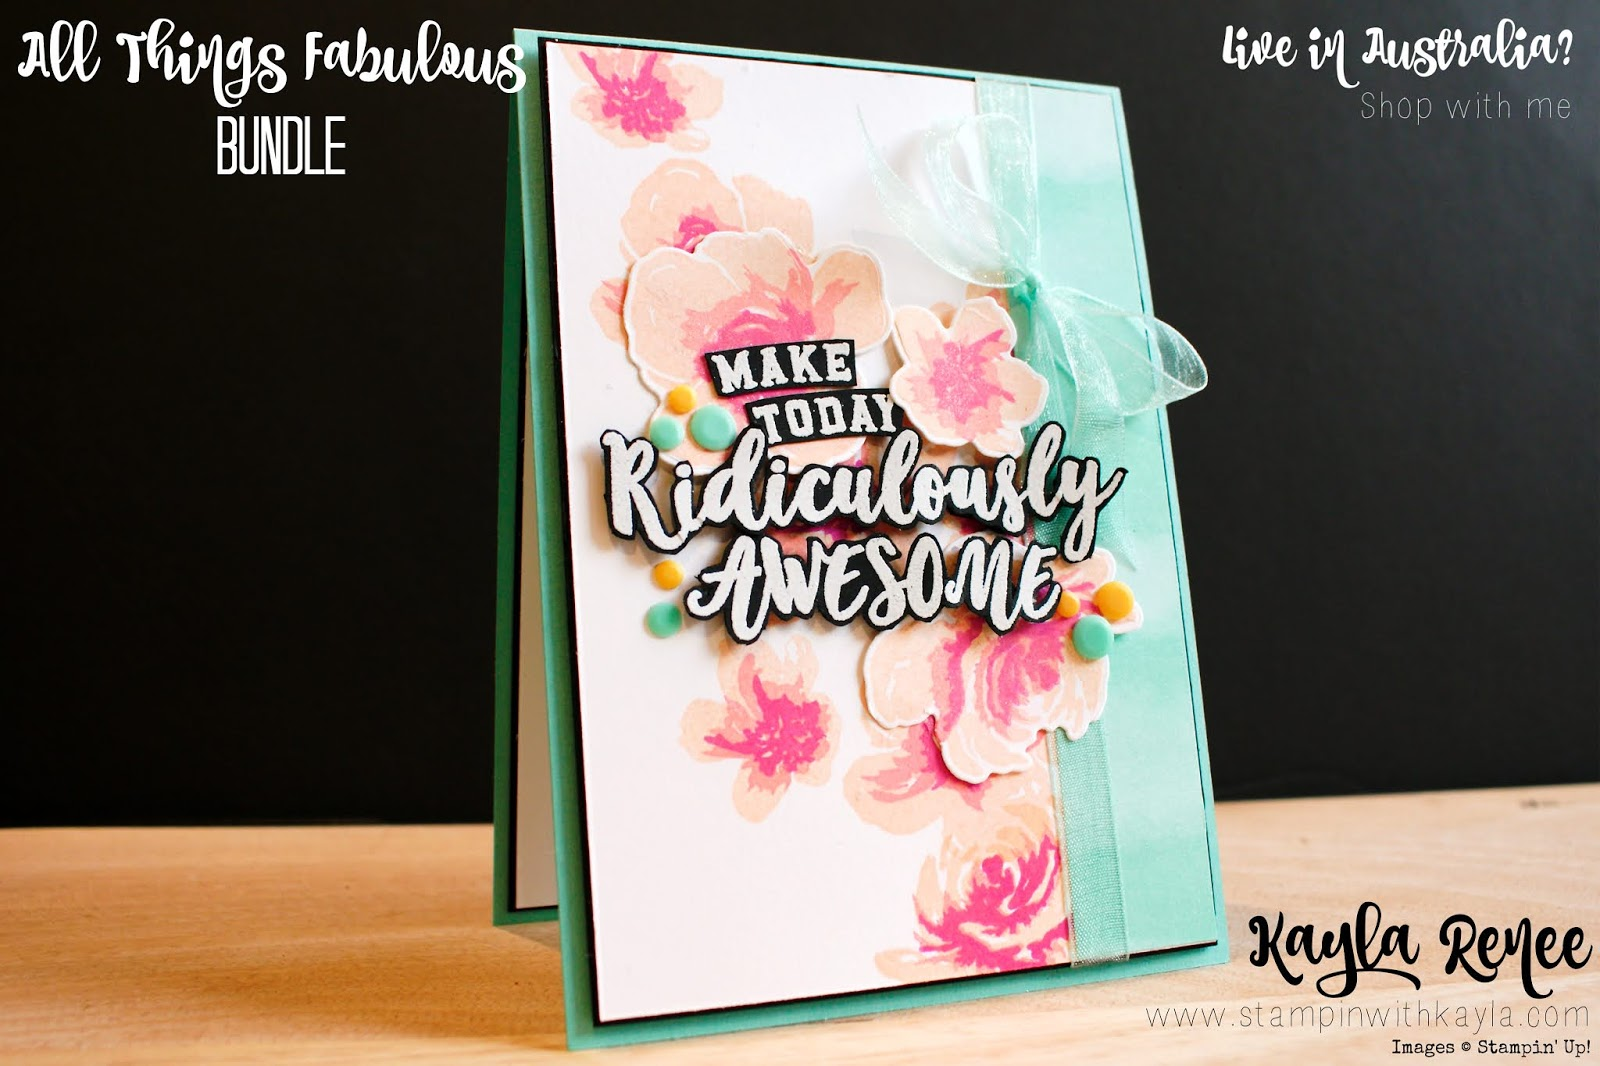 Stampin' Up! ~ #GDP246 ~ All Things Fabulous and Ridiculous Awesome Card